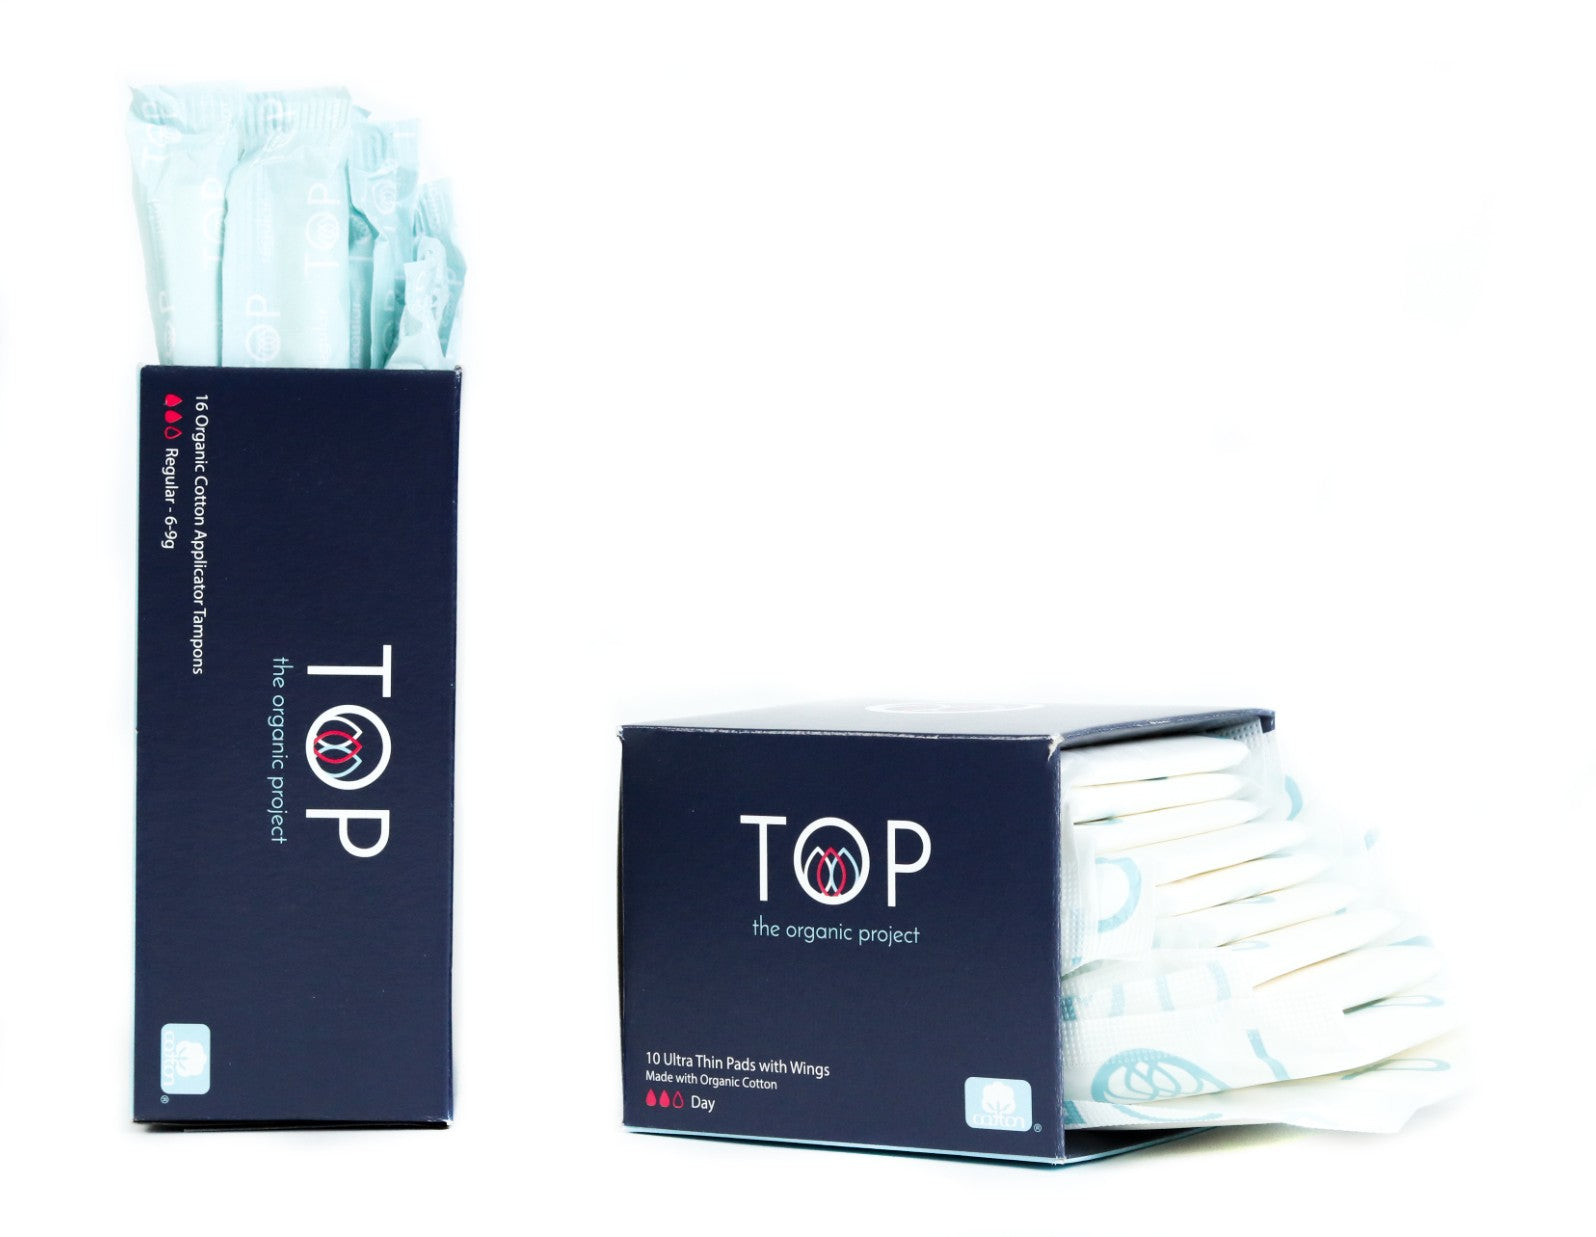 Regular Organic Cotton Tampons & Day Organic Cotton Ultra Thin Pads Pack